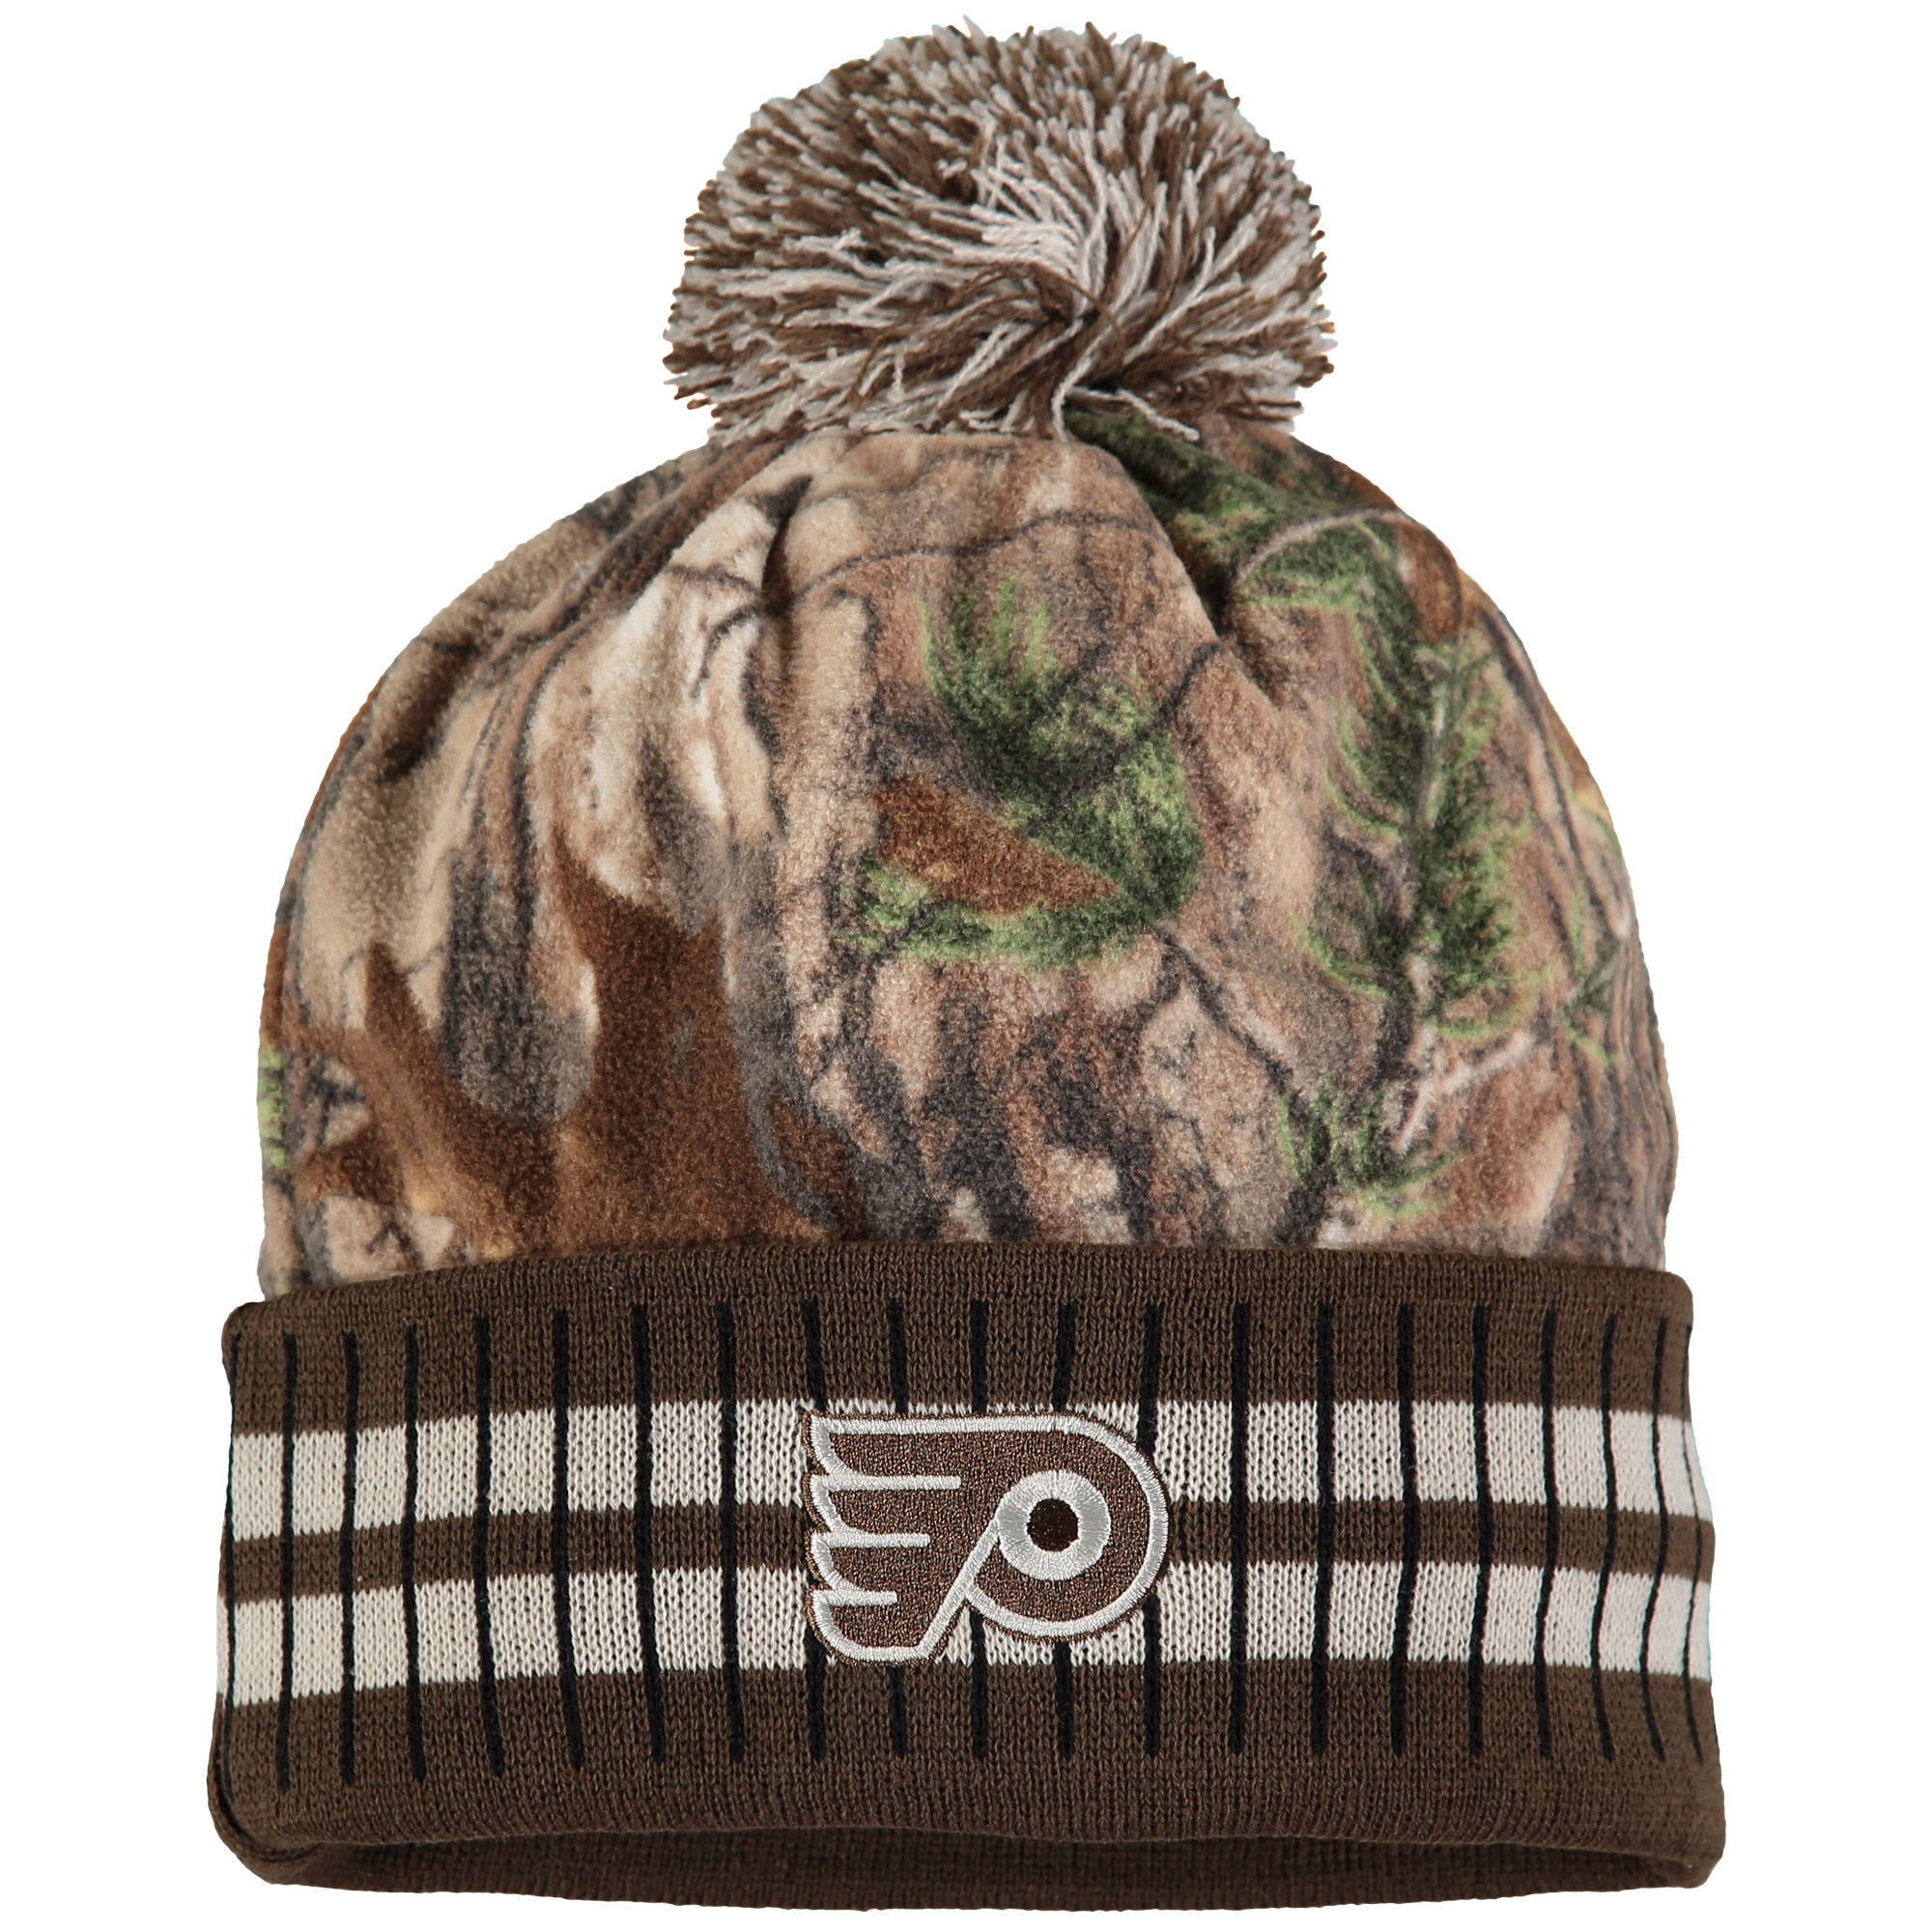 Philadelphia Flyers Old Time Hockey Realtree Xtra Cuffed Knit Hat With Pom - Camo/Brown - OSFA